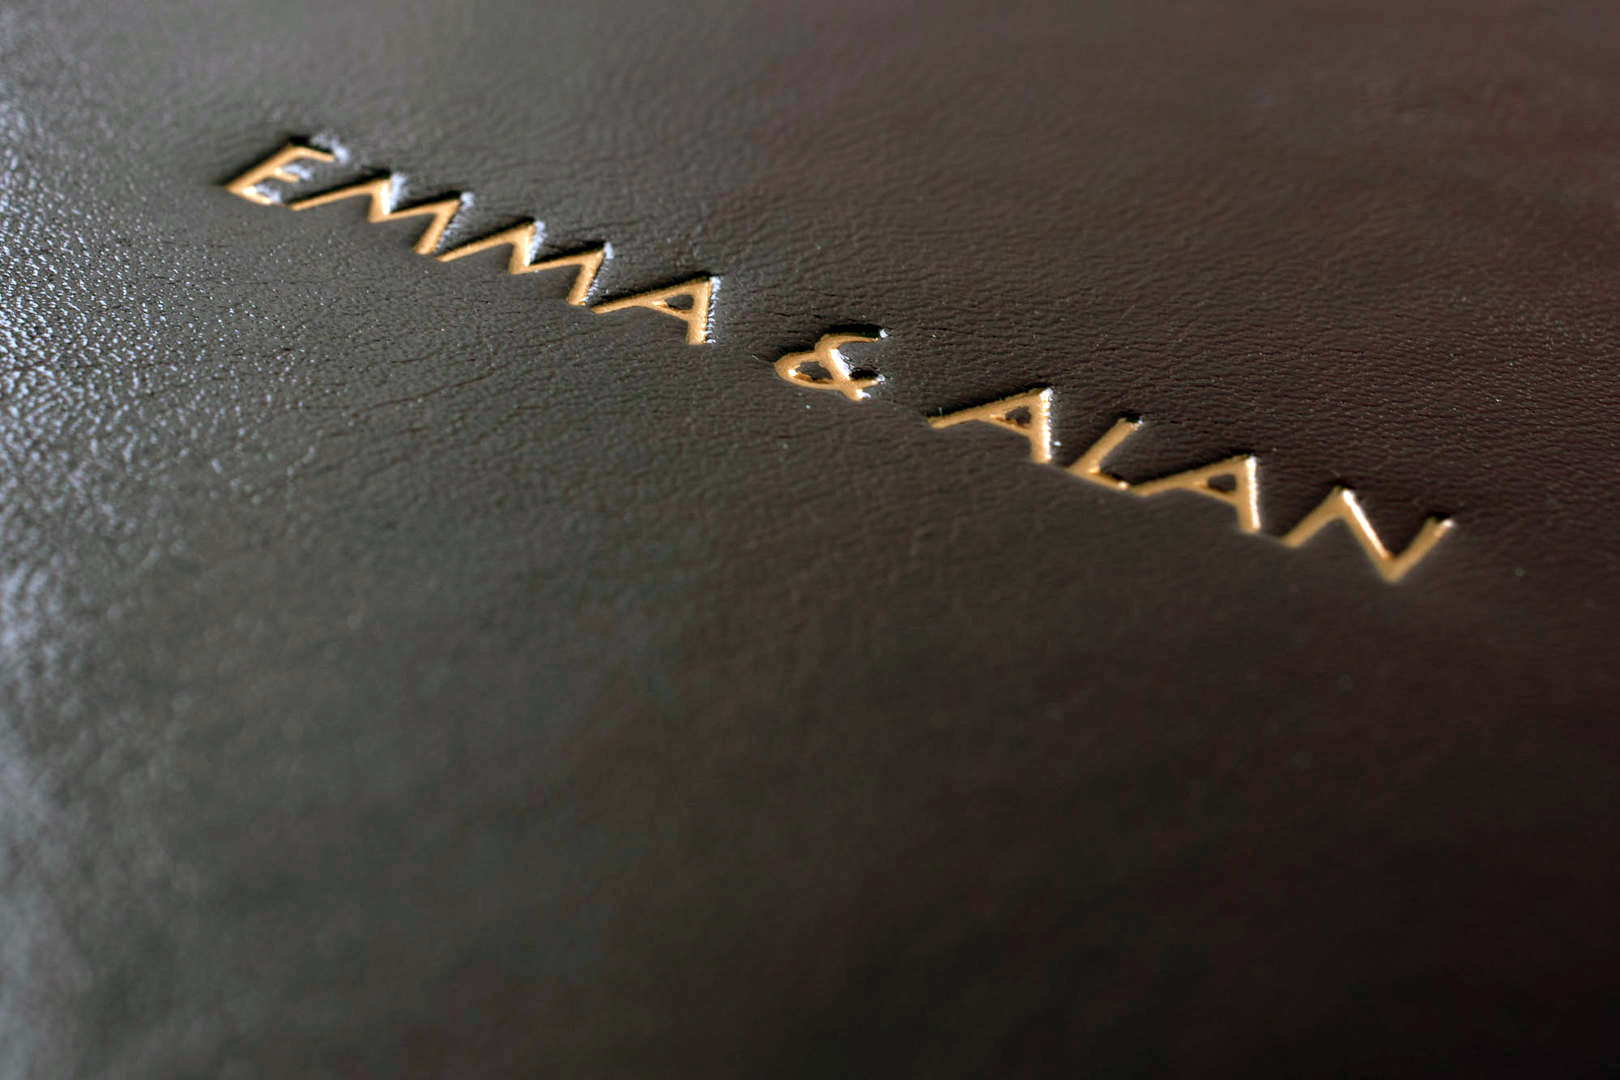 embossed text cover personalisation option text on cover photo album photo book rose gold foil minimal simple